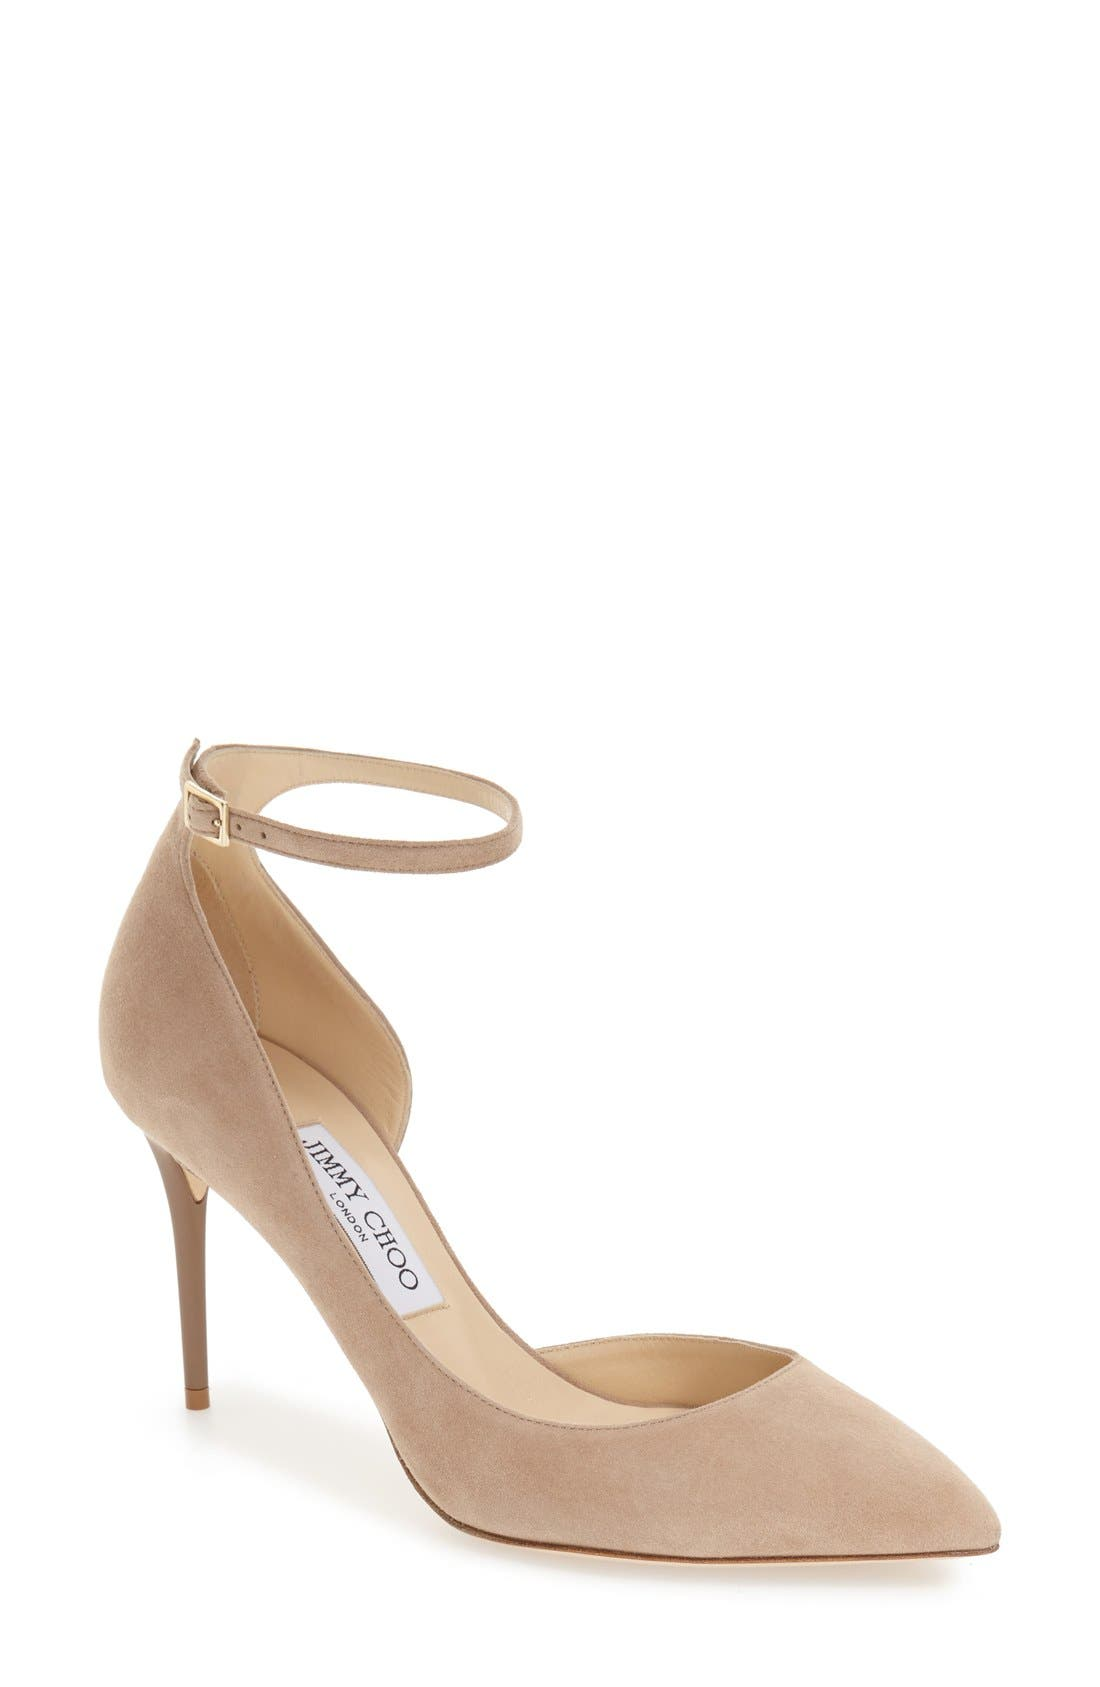 'Lucy' Half d'Orsay Pointy Toe Pump,                             Main thumbnail 4, color,